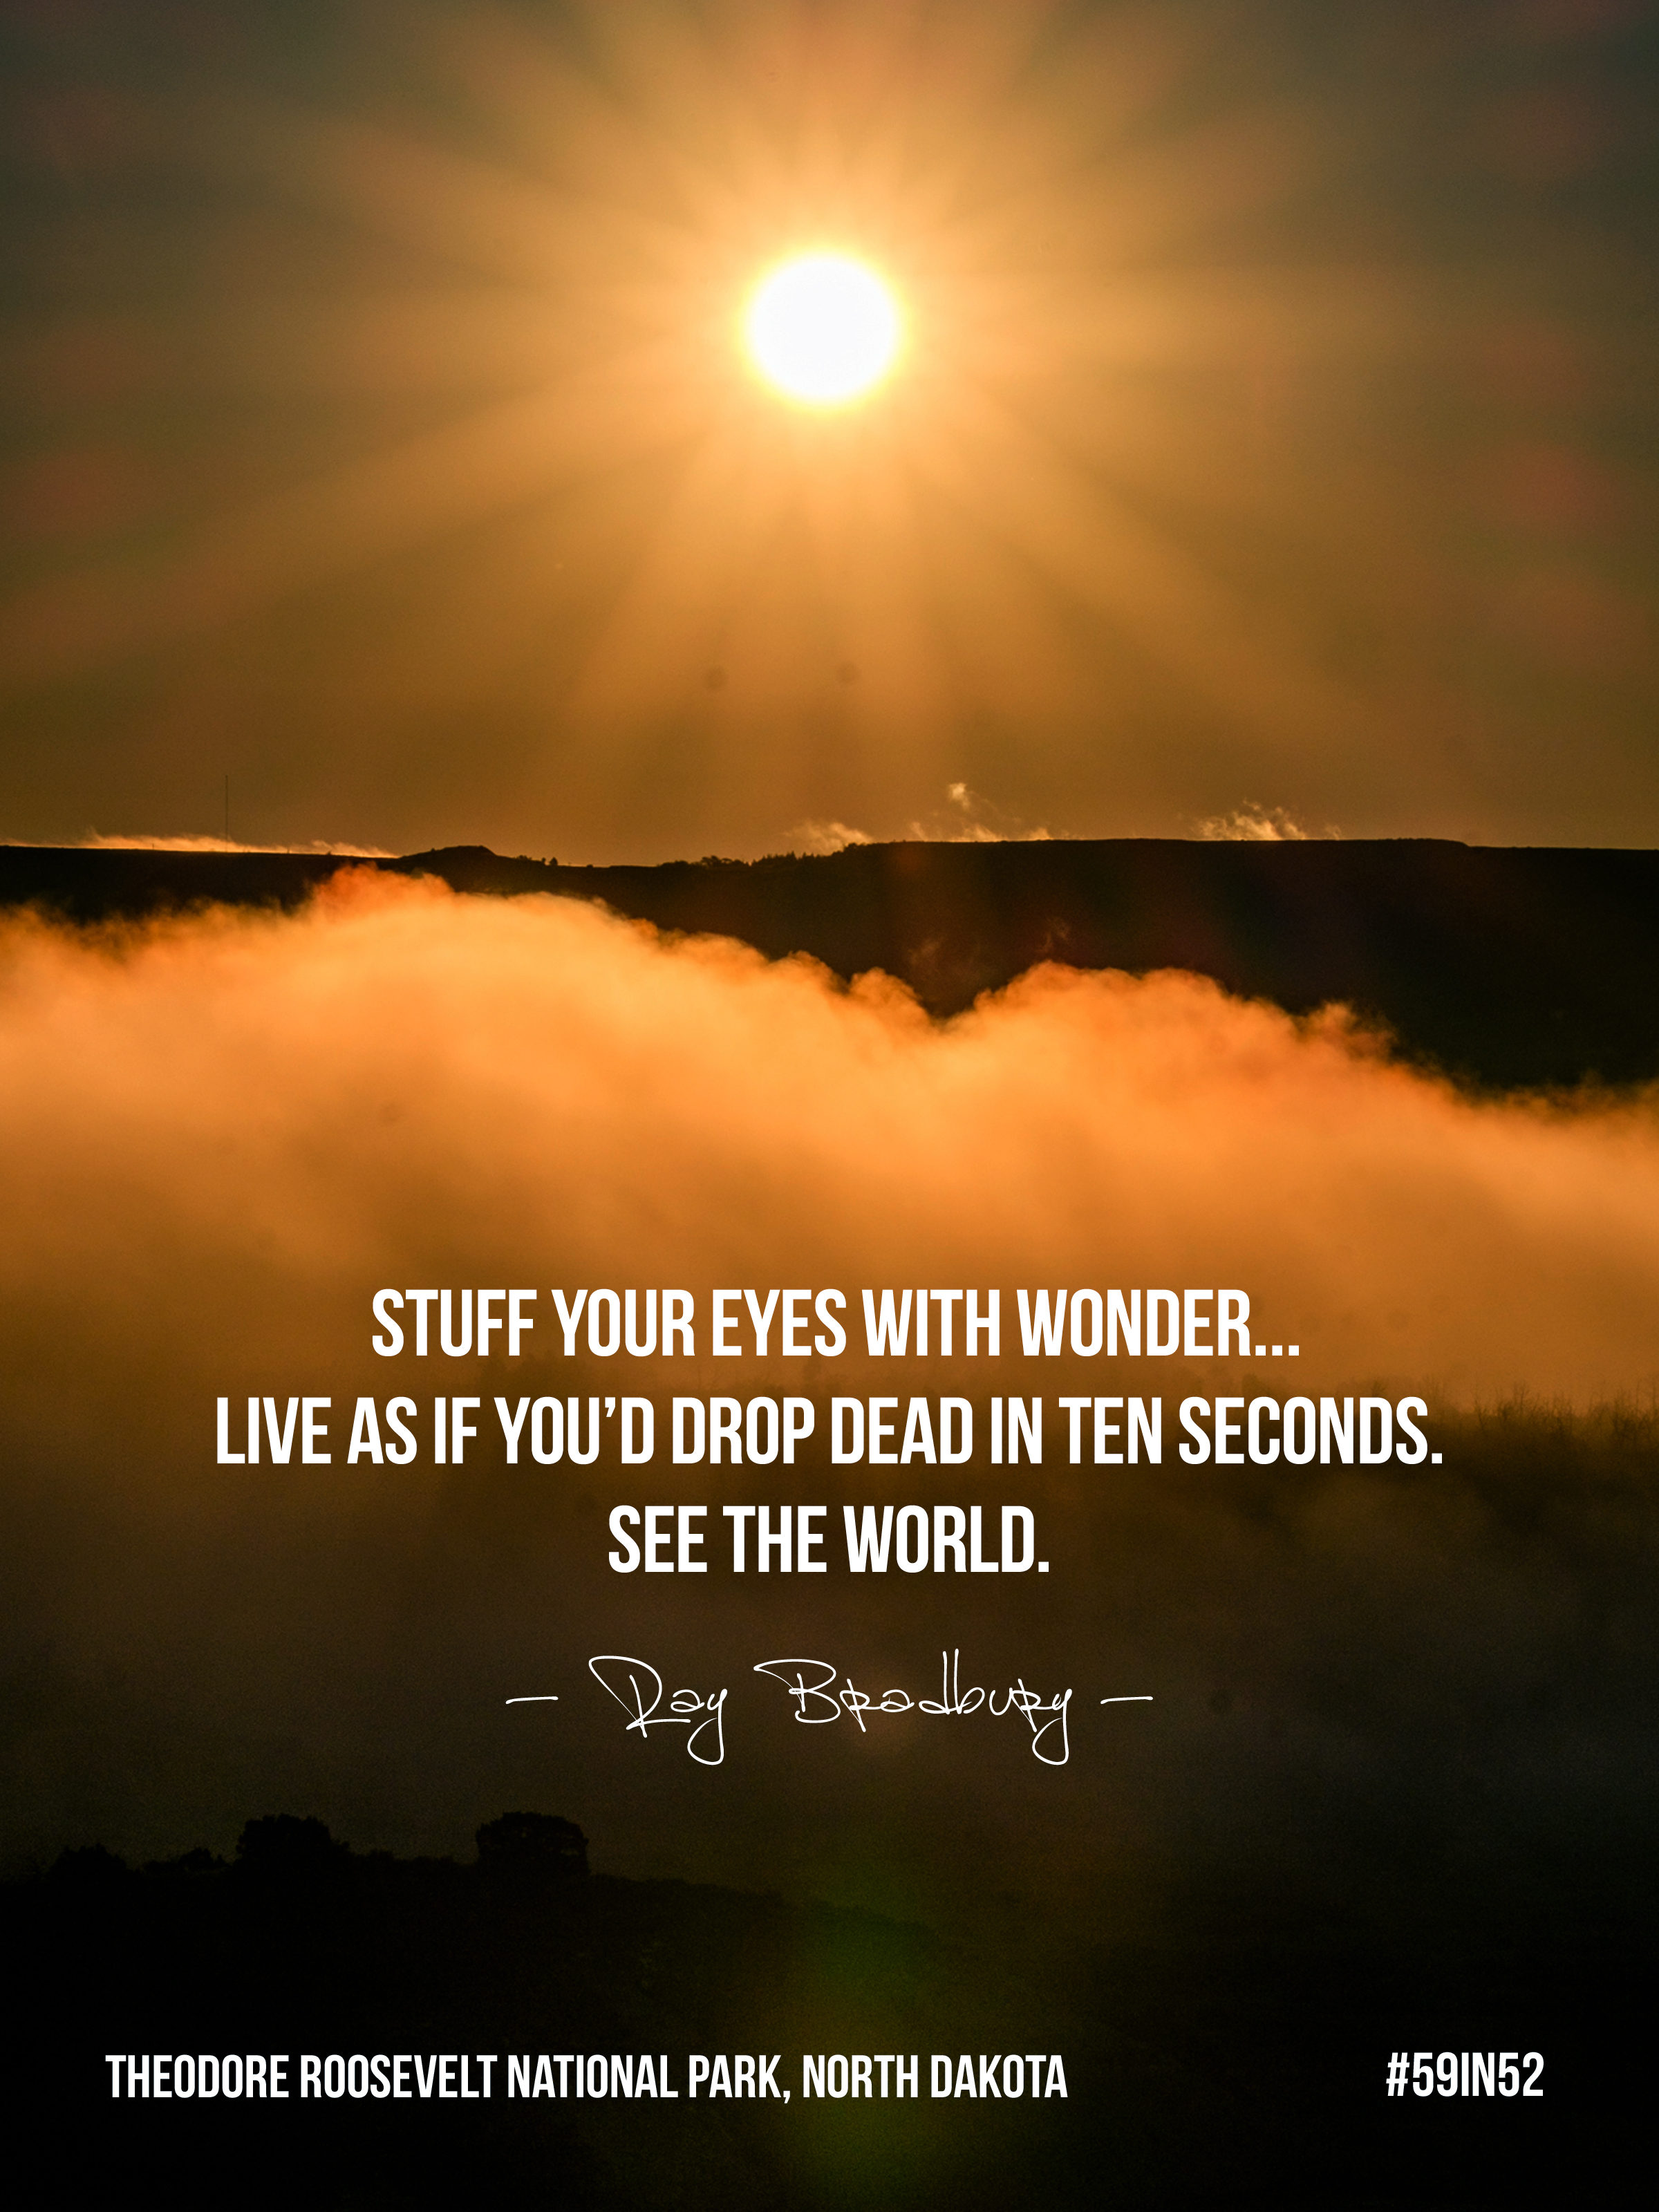 """""""Stuff your eyes with wonder... live as if you'd drop dead in ten seconds. See the world."""" - Ray Bradbury"""